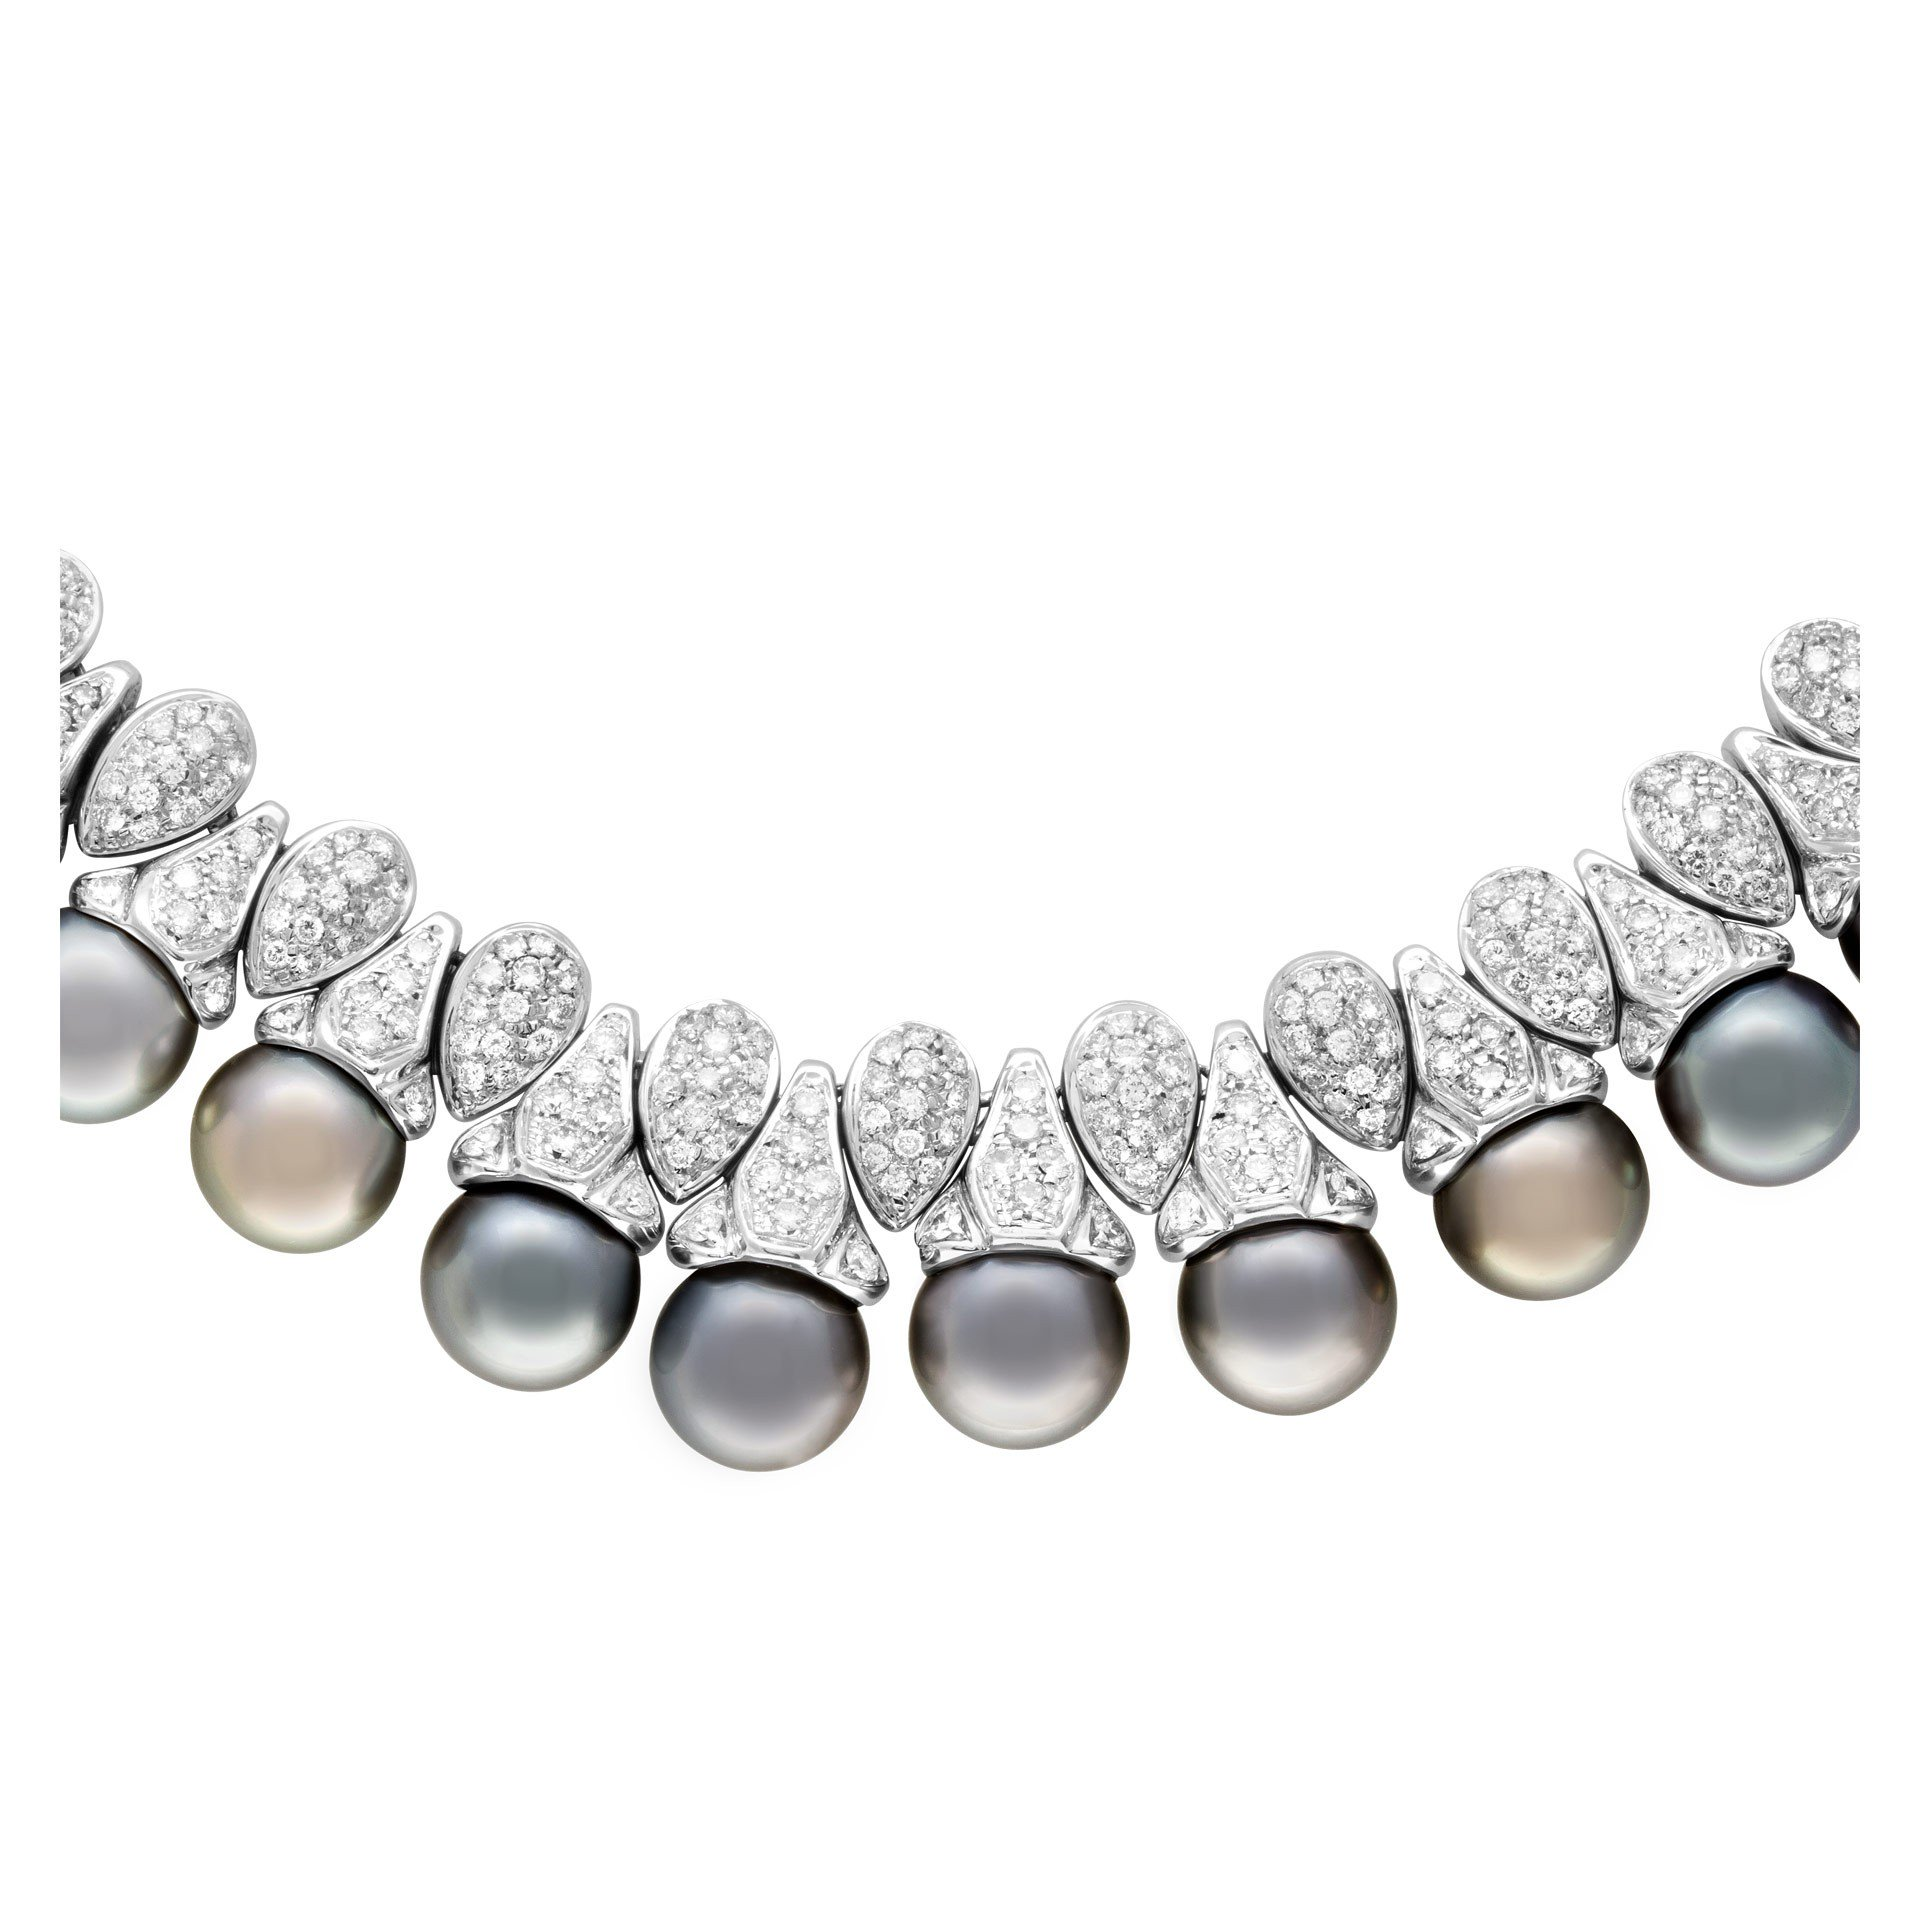 Diamond and Pearl Jewelry: Black pearl and diamond necklace